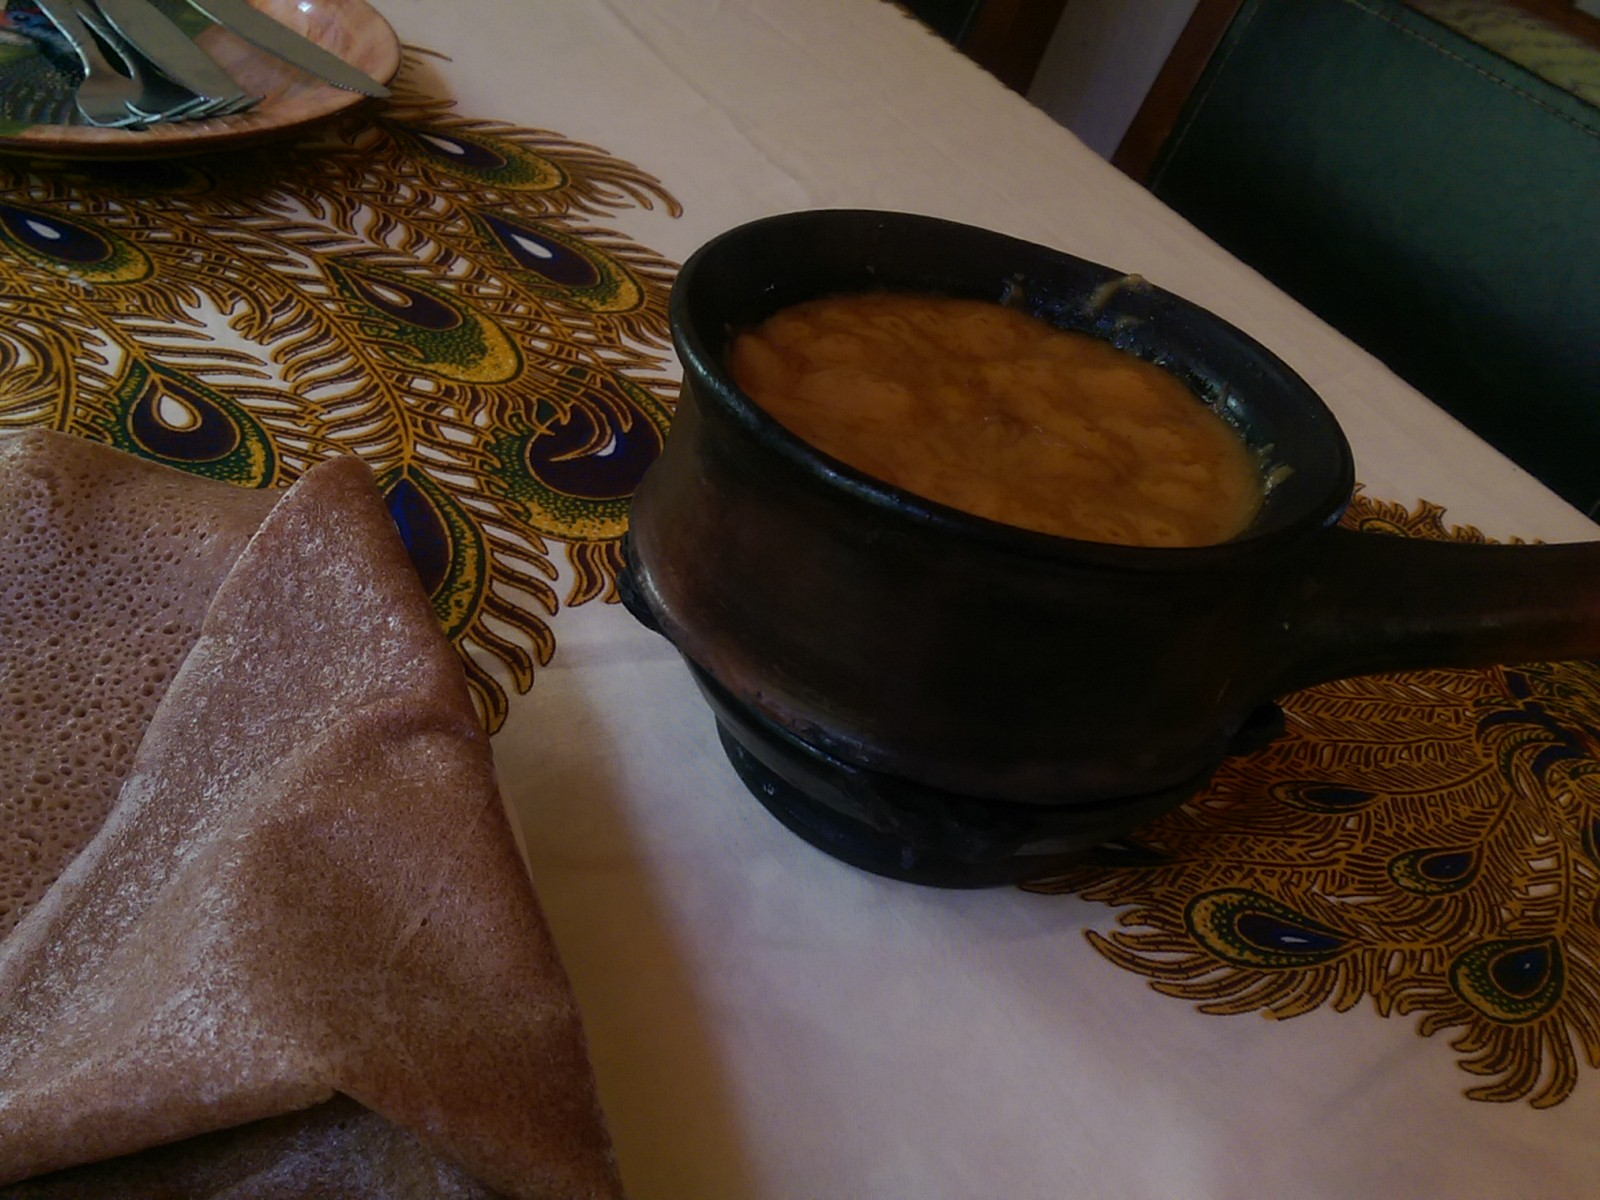 A plate of injera to the left and a metal pot with sizzling orange contents